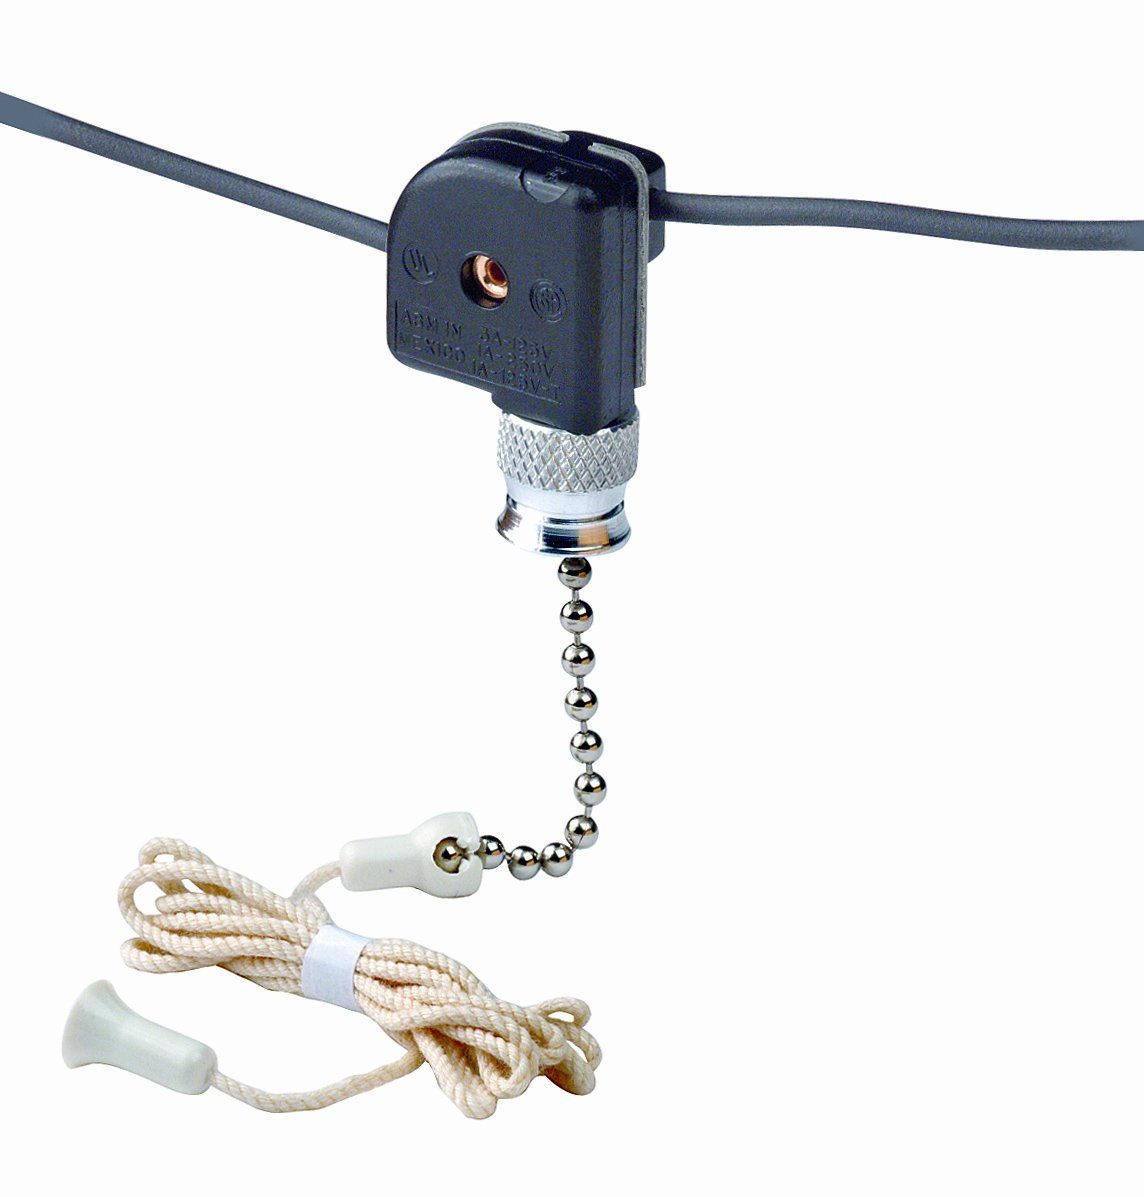 Leviton 10097 8 pull chain switch single pole on off 1a 125v t 3a leviton 10097 8 pull chain switch single pole on off 1a 125v t 3a 125v 1a 250v with two 6 inch black leads 18 awg awm tew 105c 600v stripped 12 inch audiocablefo